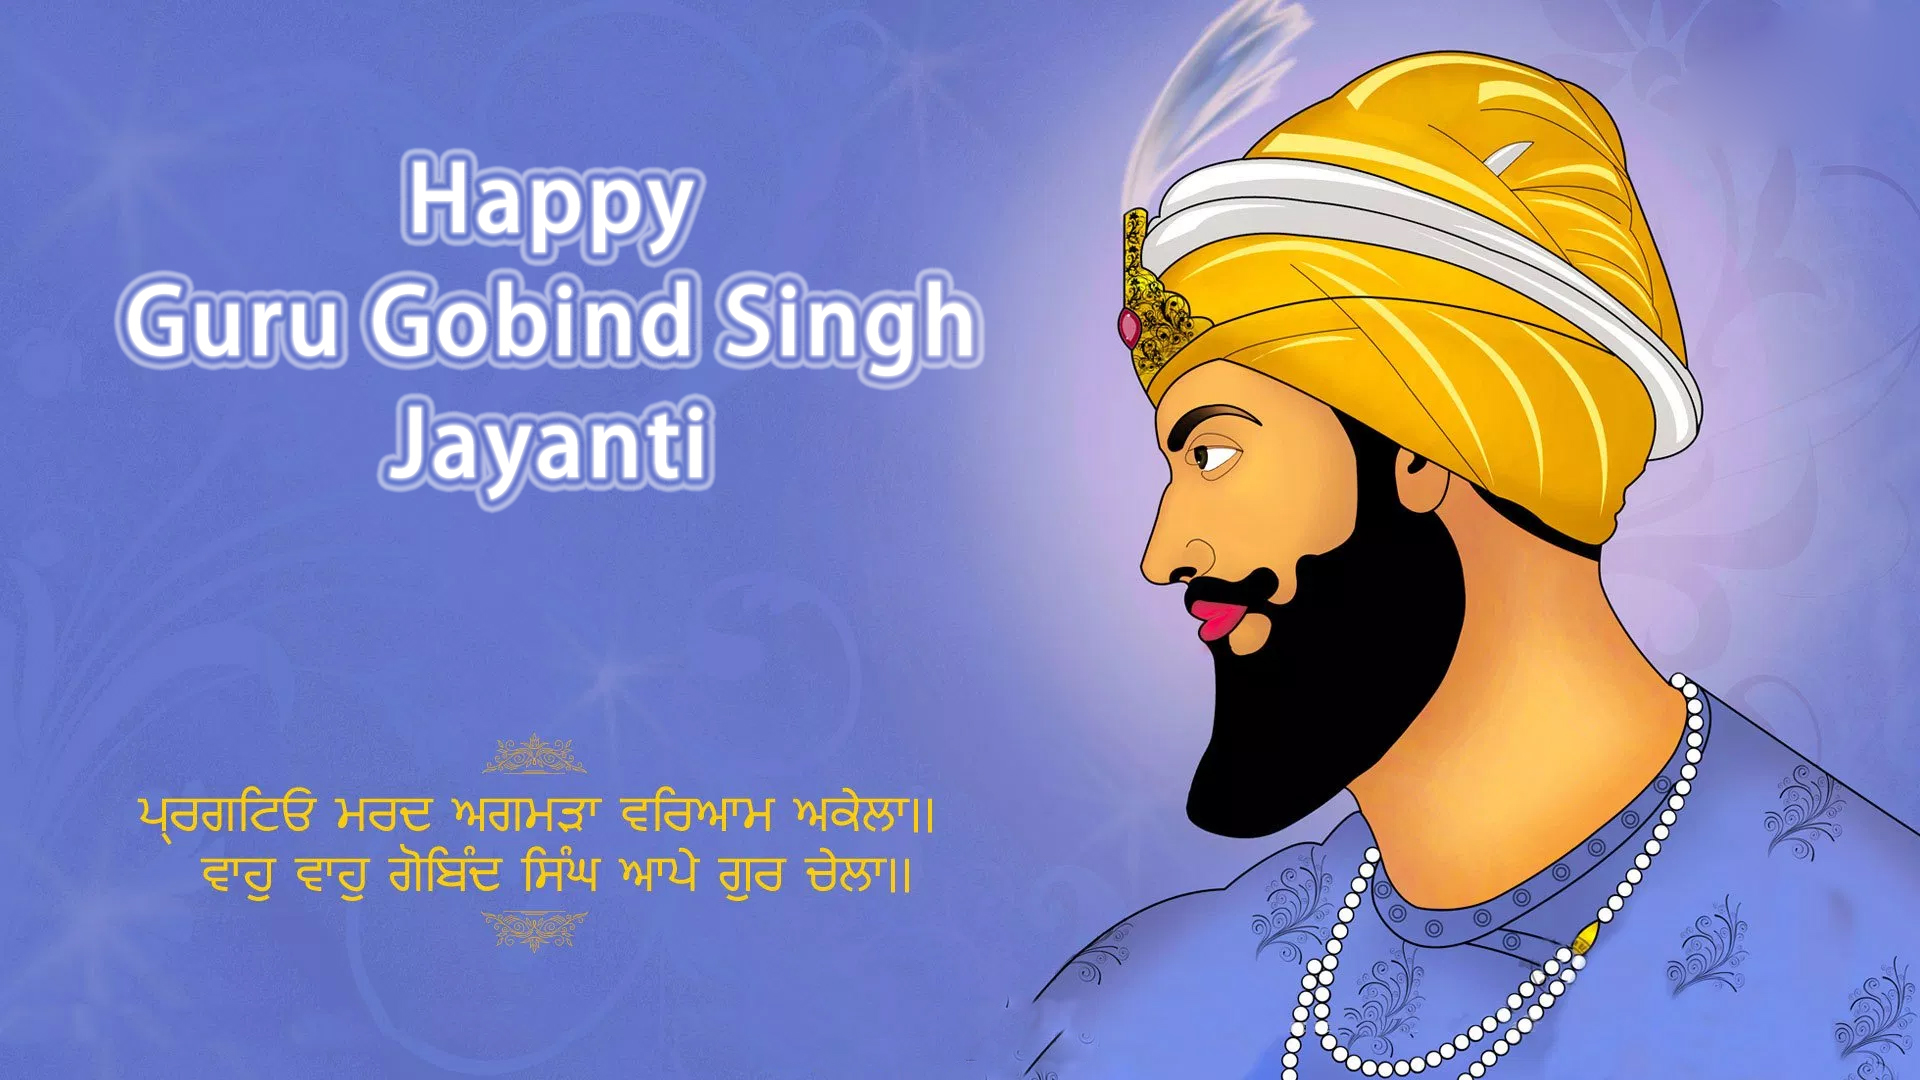 Happy Guru Gobind Singh Jayanti Wishes Image In Hindi Download Free